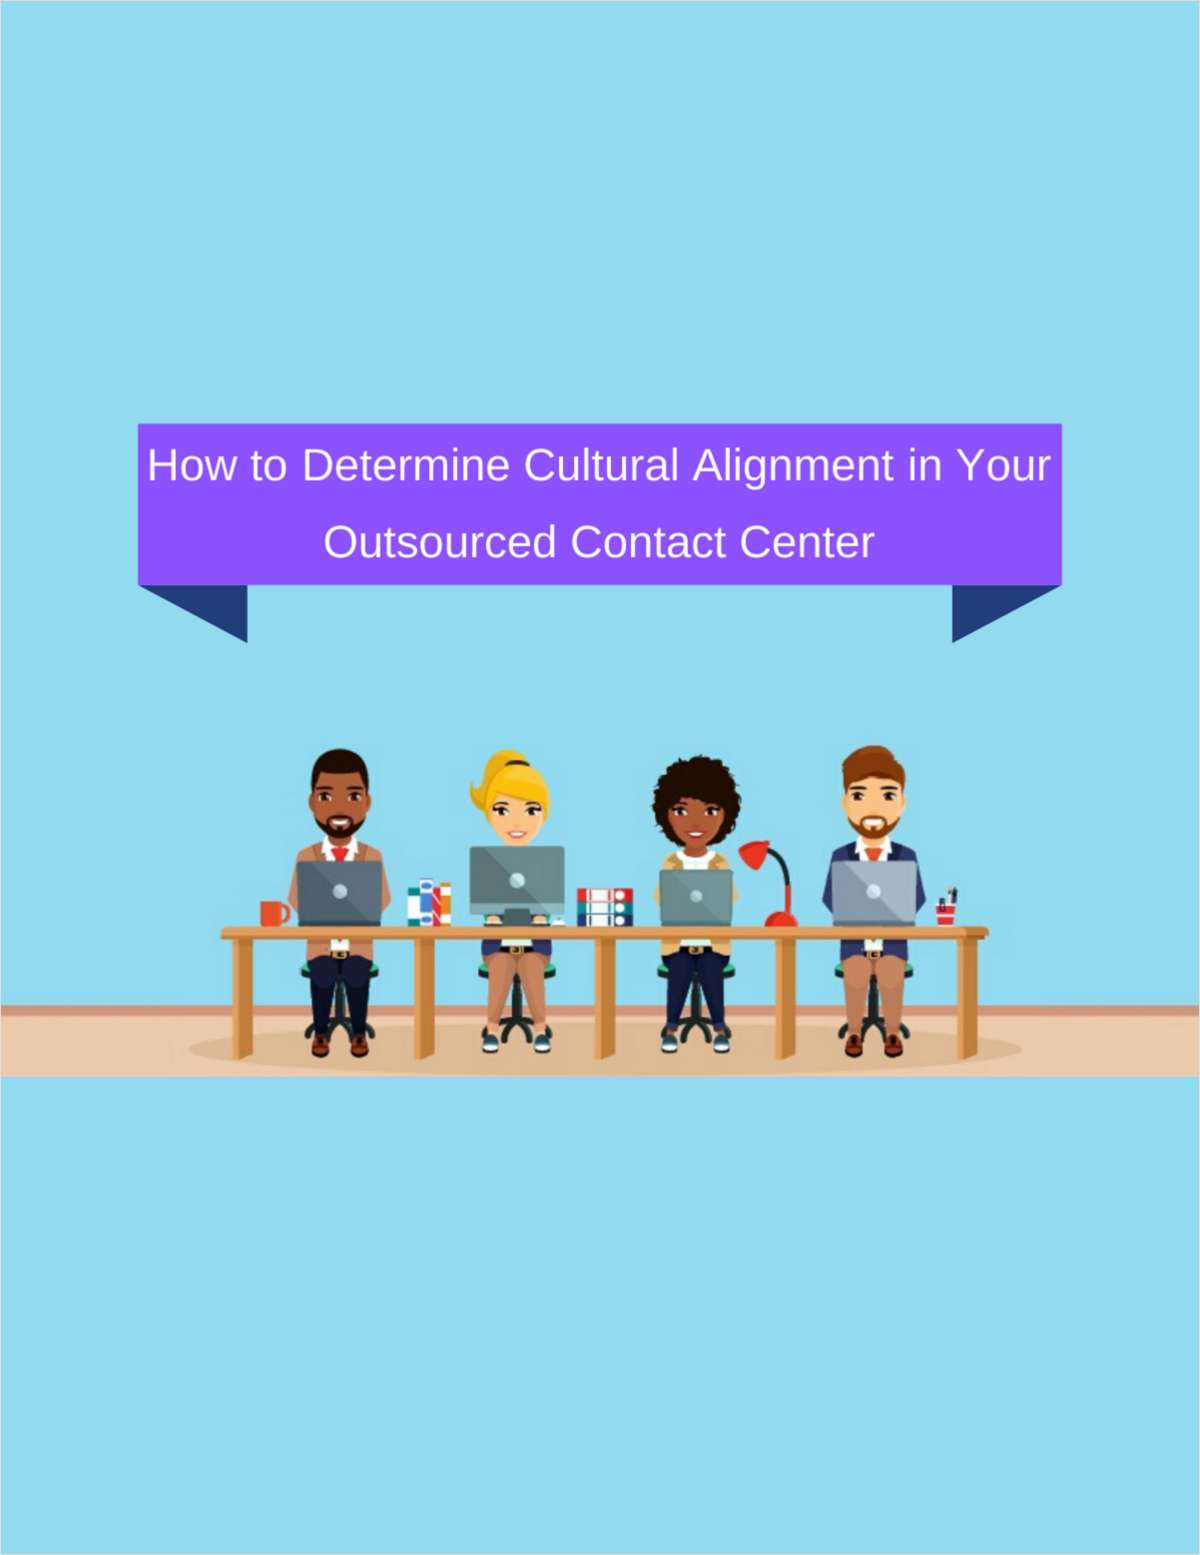 How to Determine Cultural Alignment in Your Outsourced Contact Center